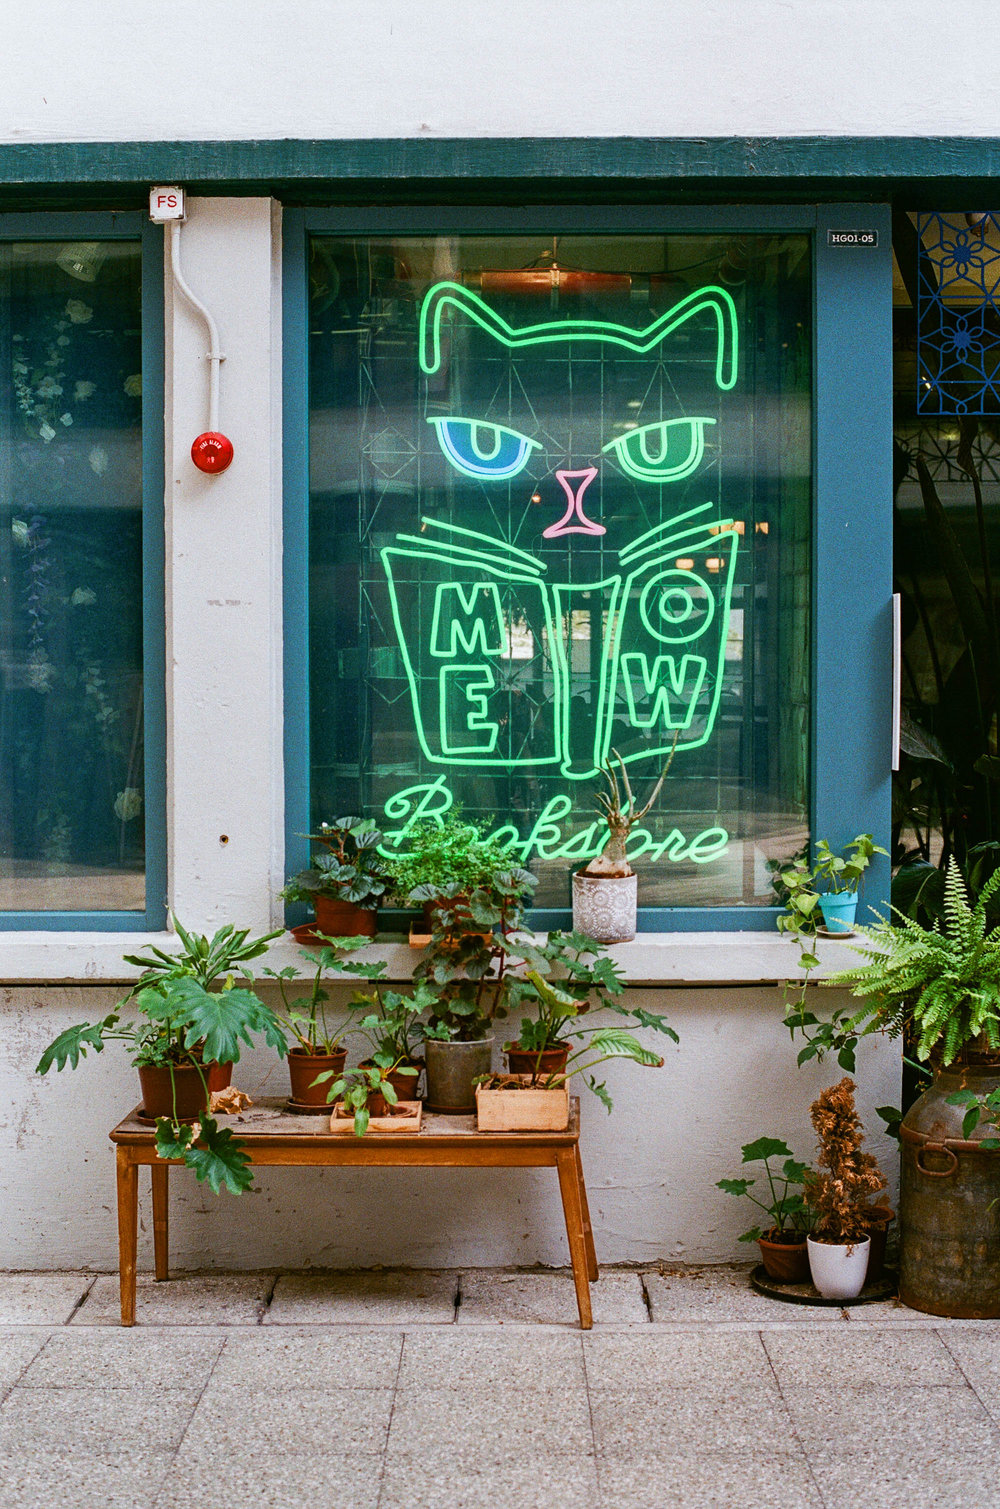 Meow Cafe Hong Kong Central © 2019 JK Blackwell twoguineapigs